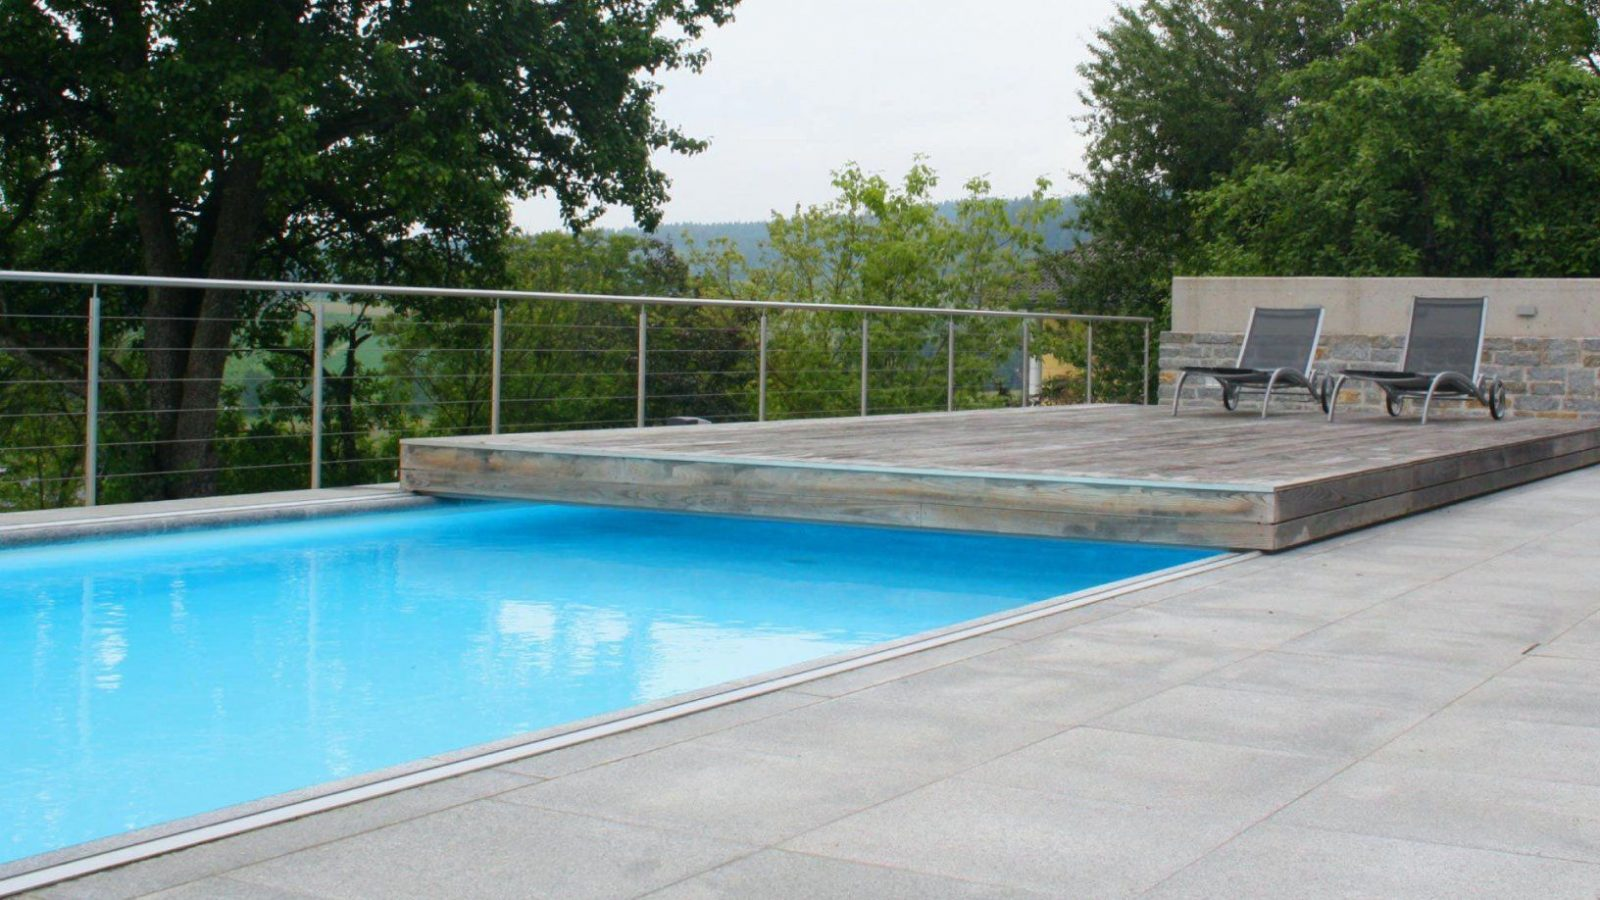 Pool Bodensauger Selber Bauen Poolsauger Selber Bauen Steinbach Speed Clean Comfort Mit Mh